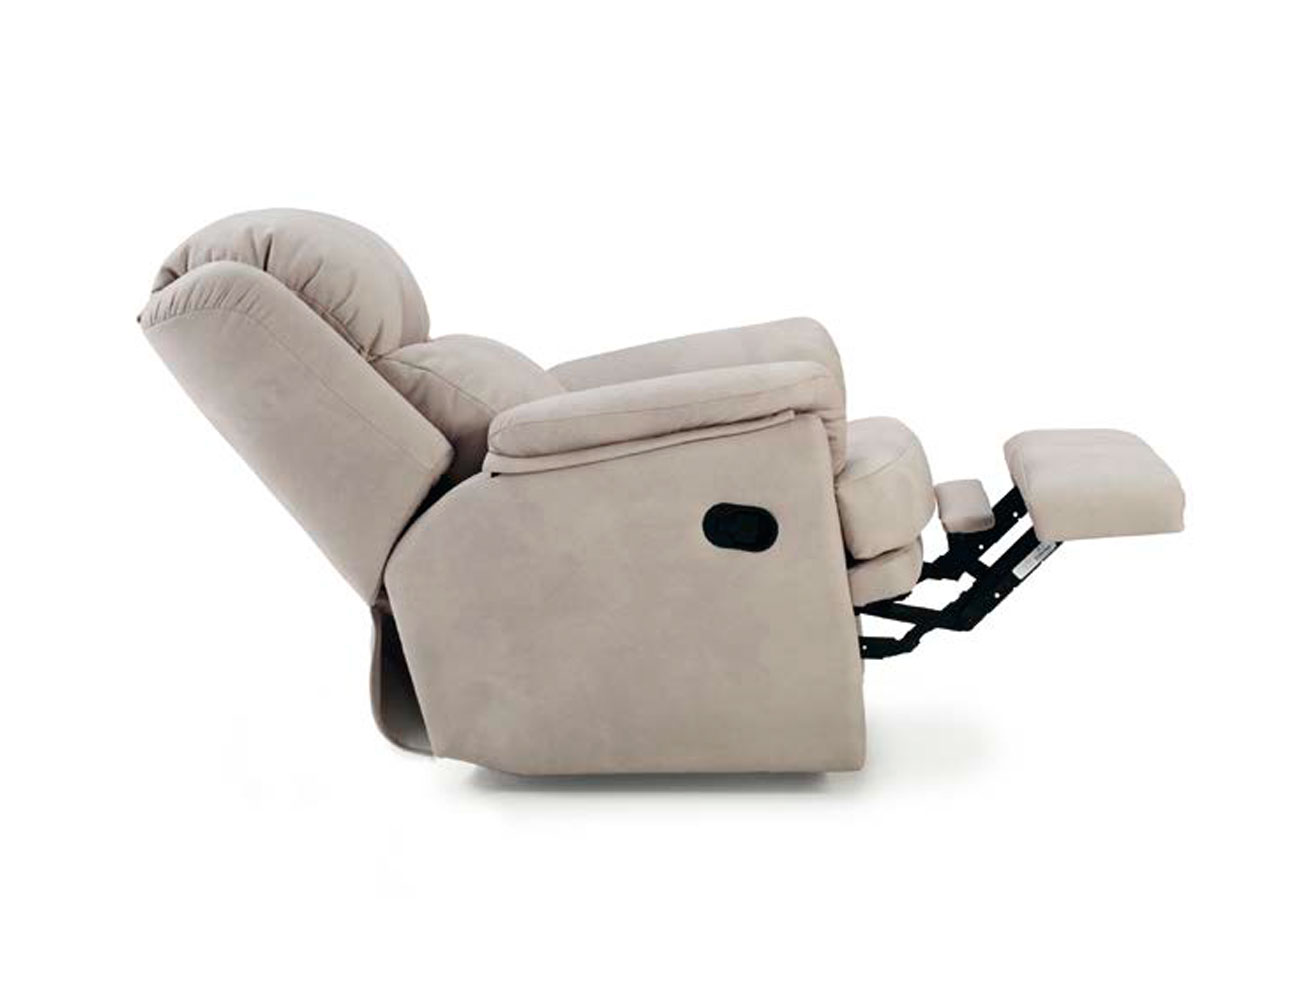 Sillon relax manual palanca esther 118